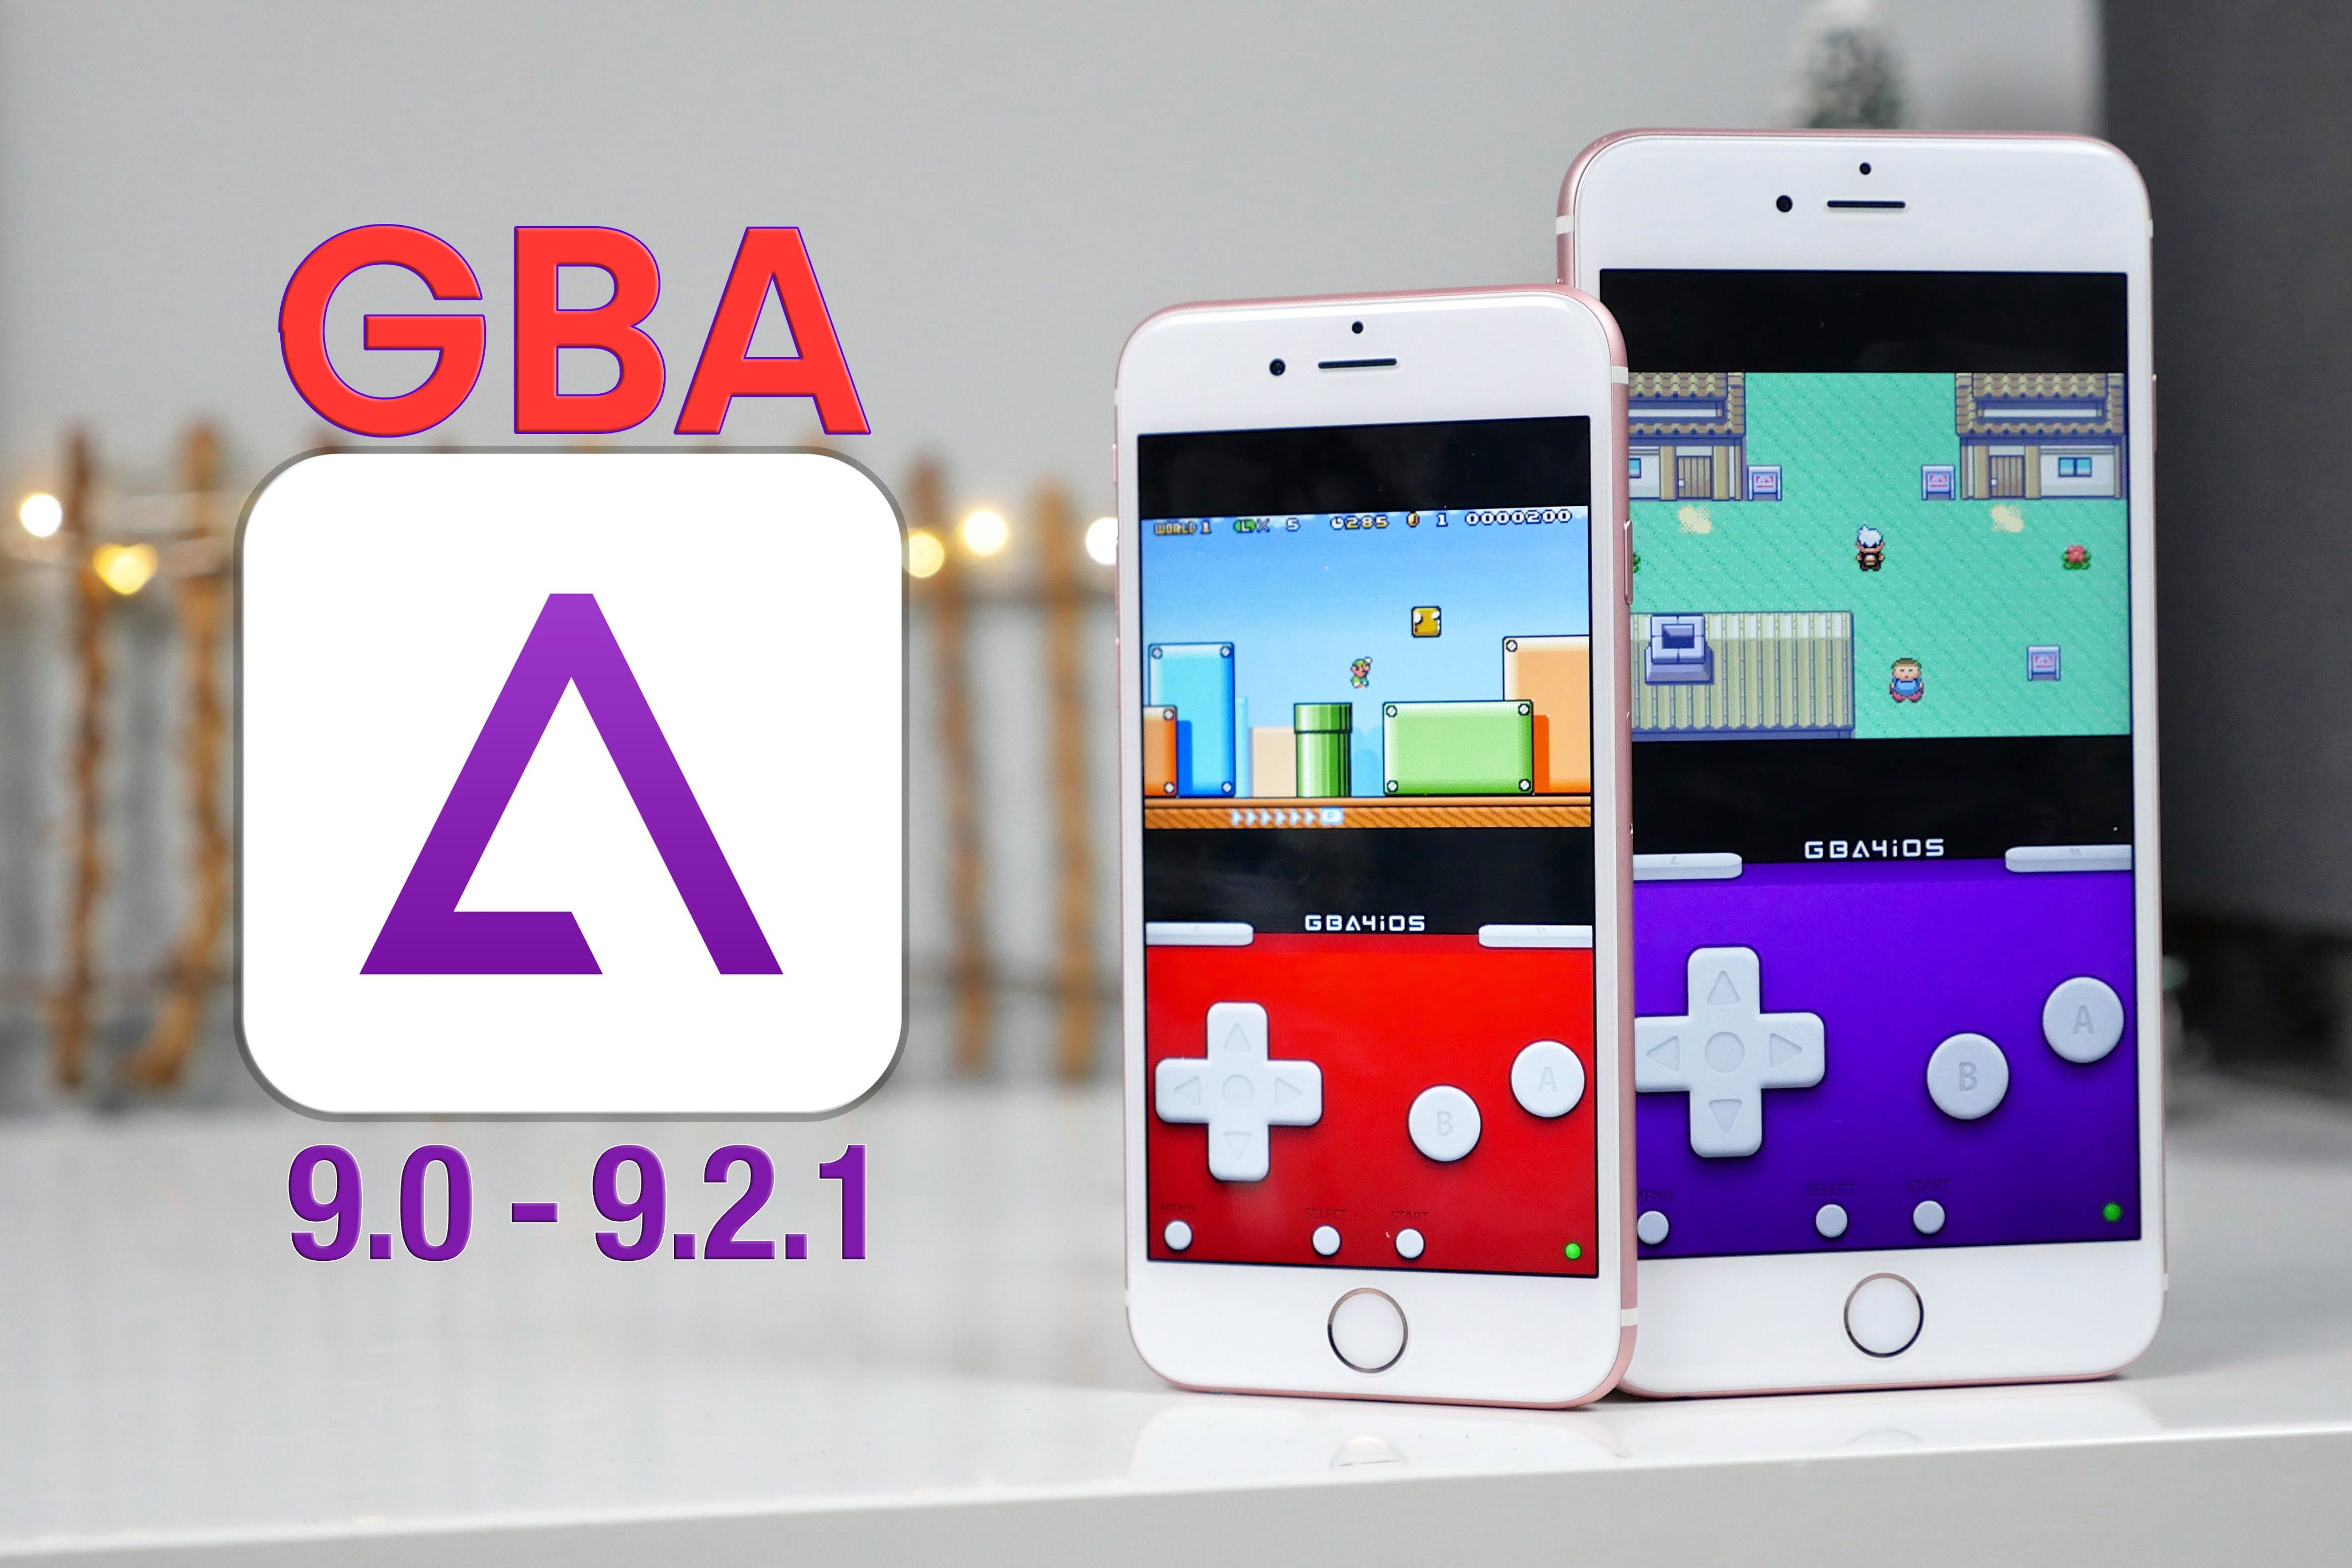 how to install gba emulator on iphone without jailbreak